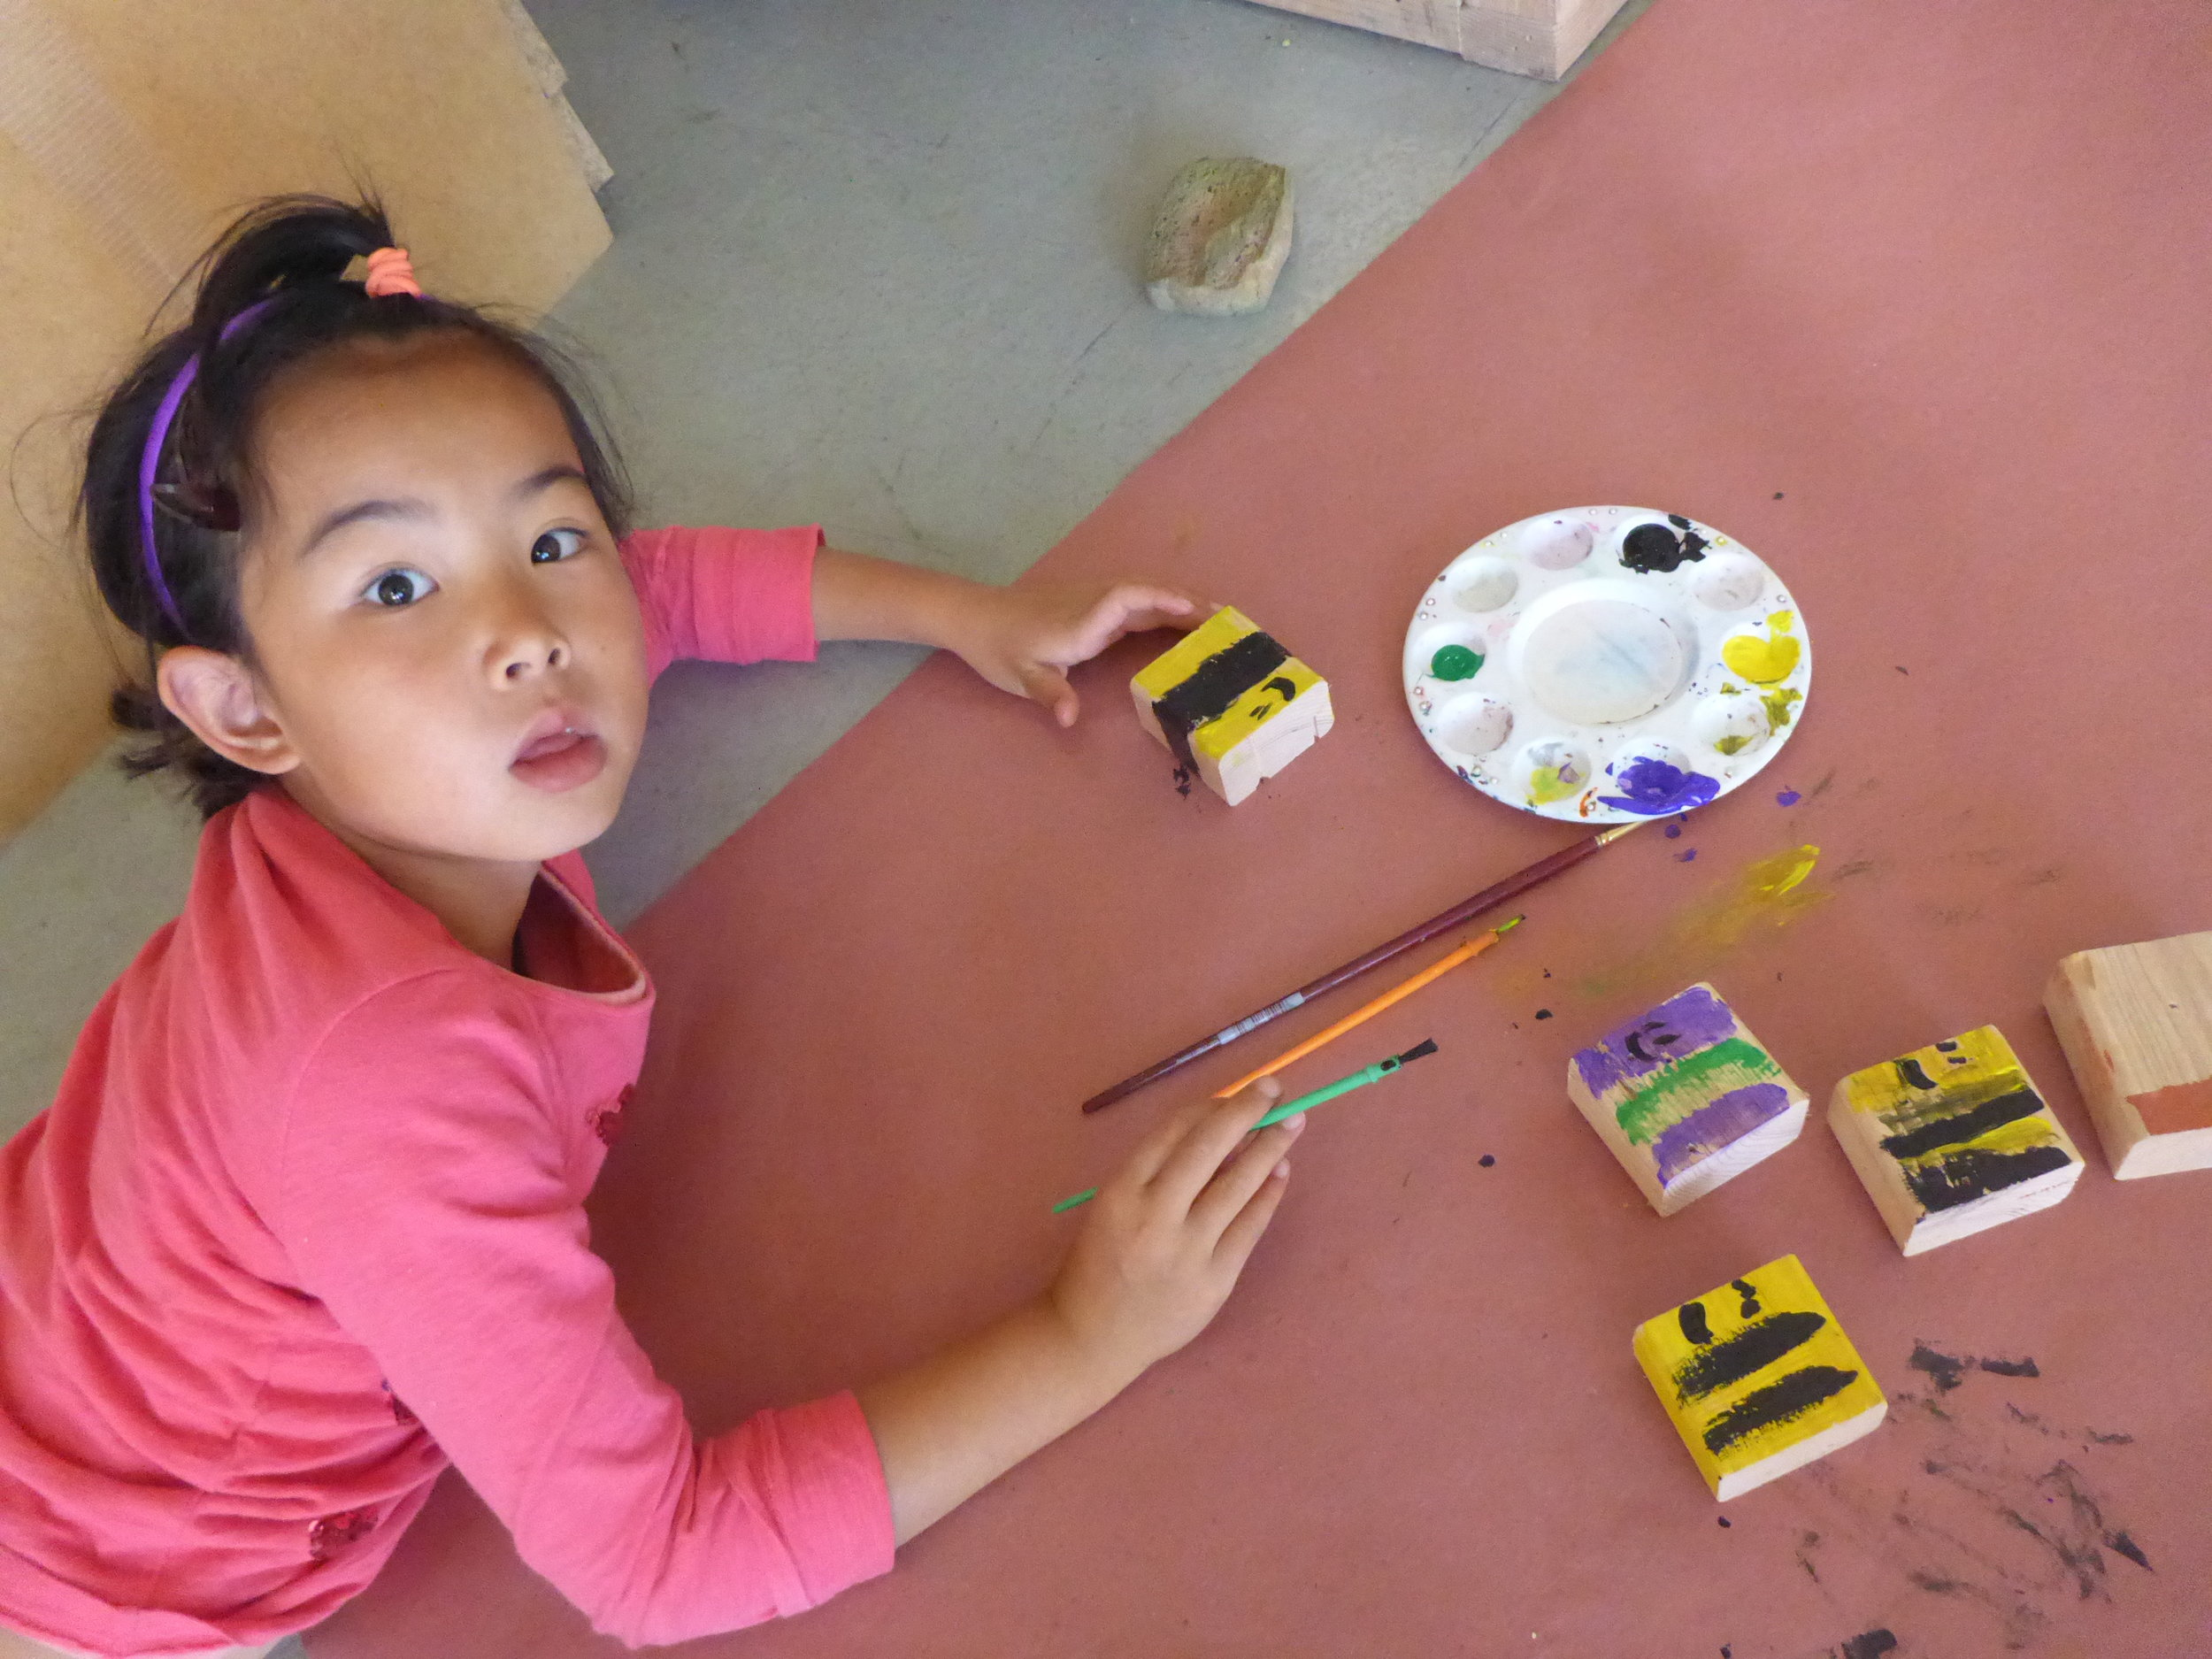 Lilly paints some tiny bees.